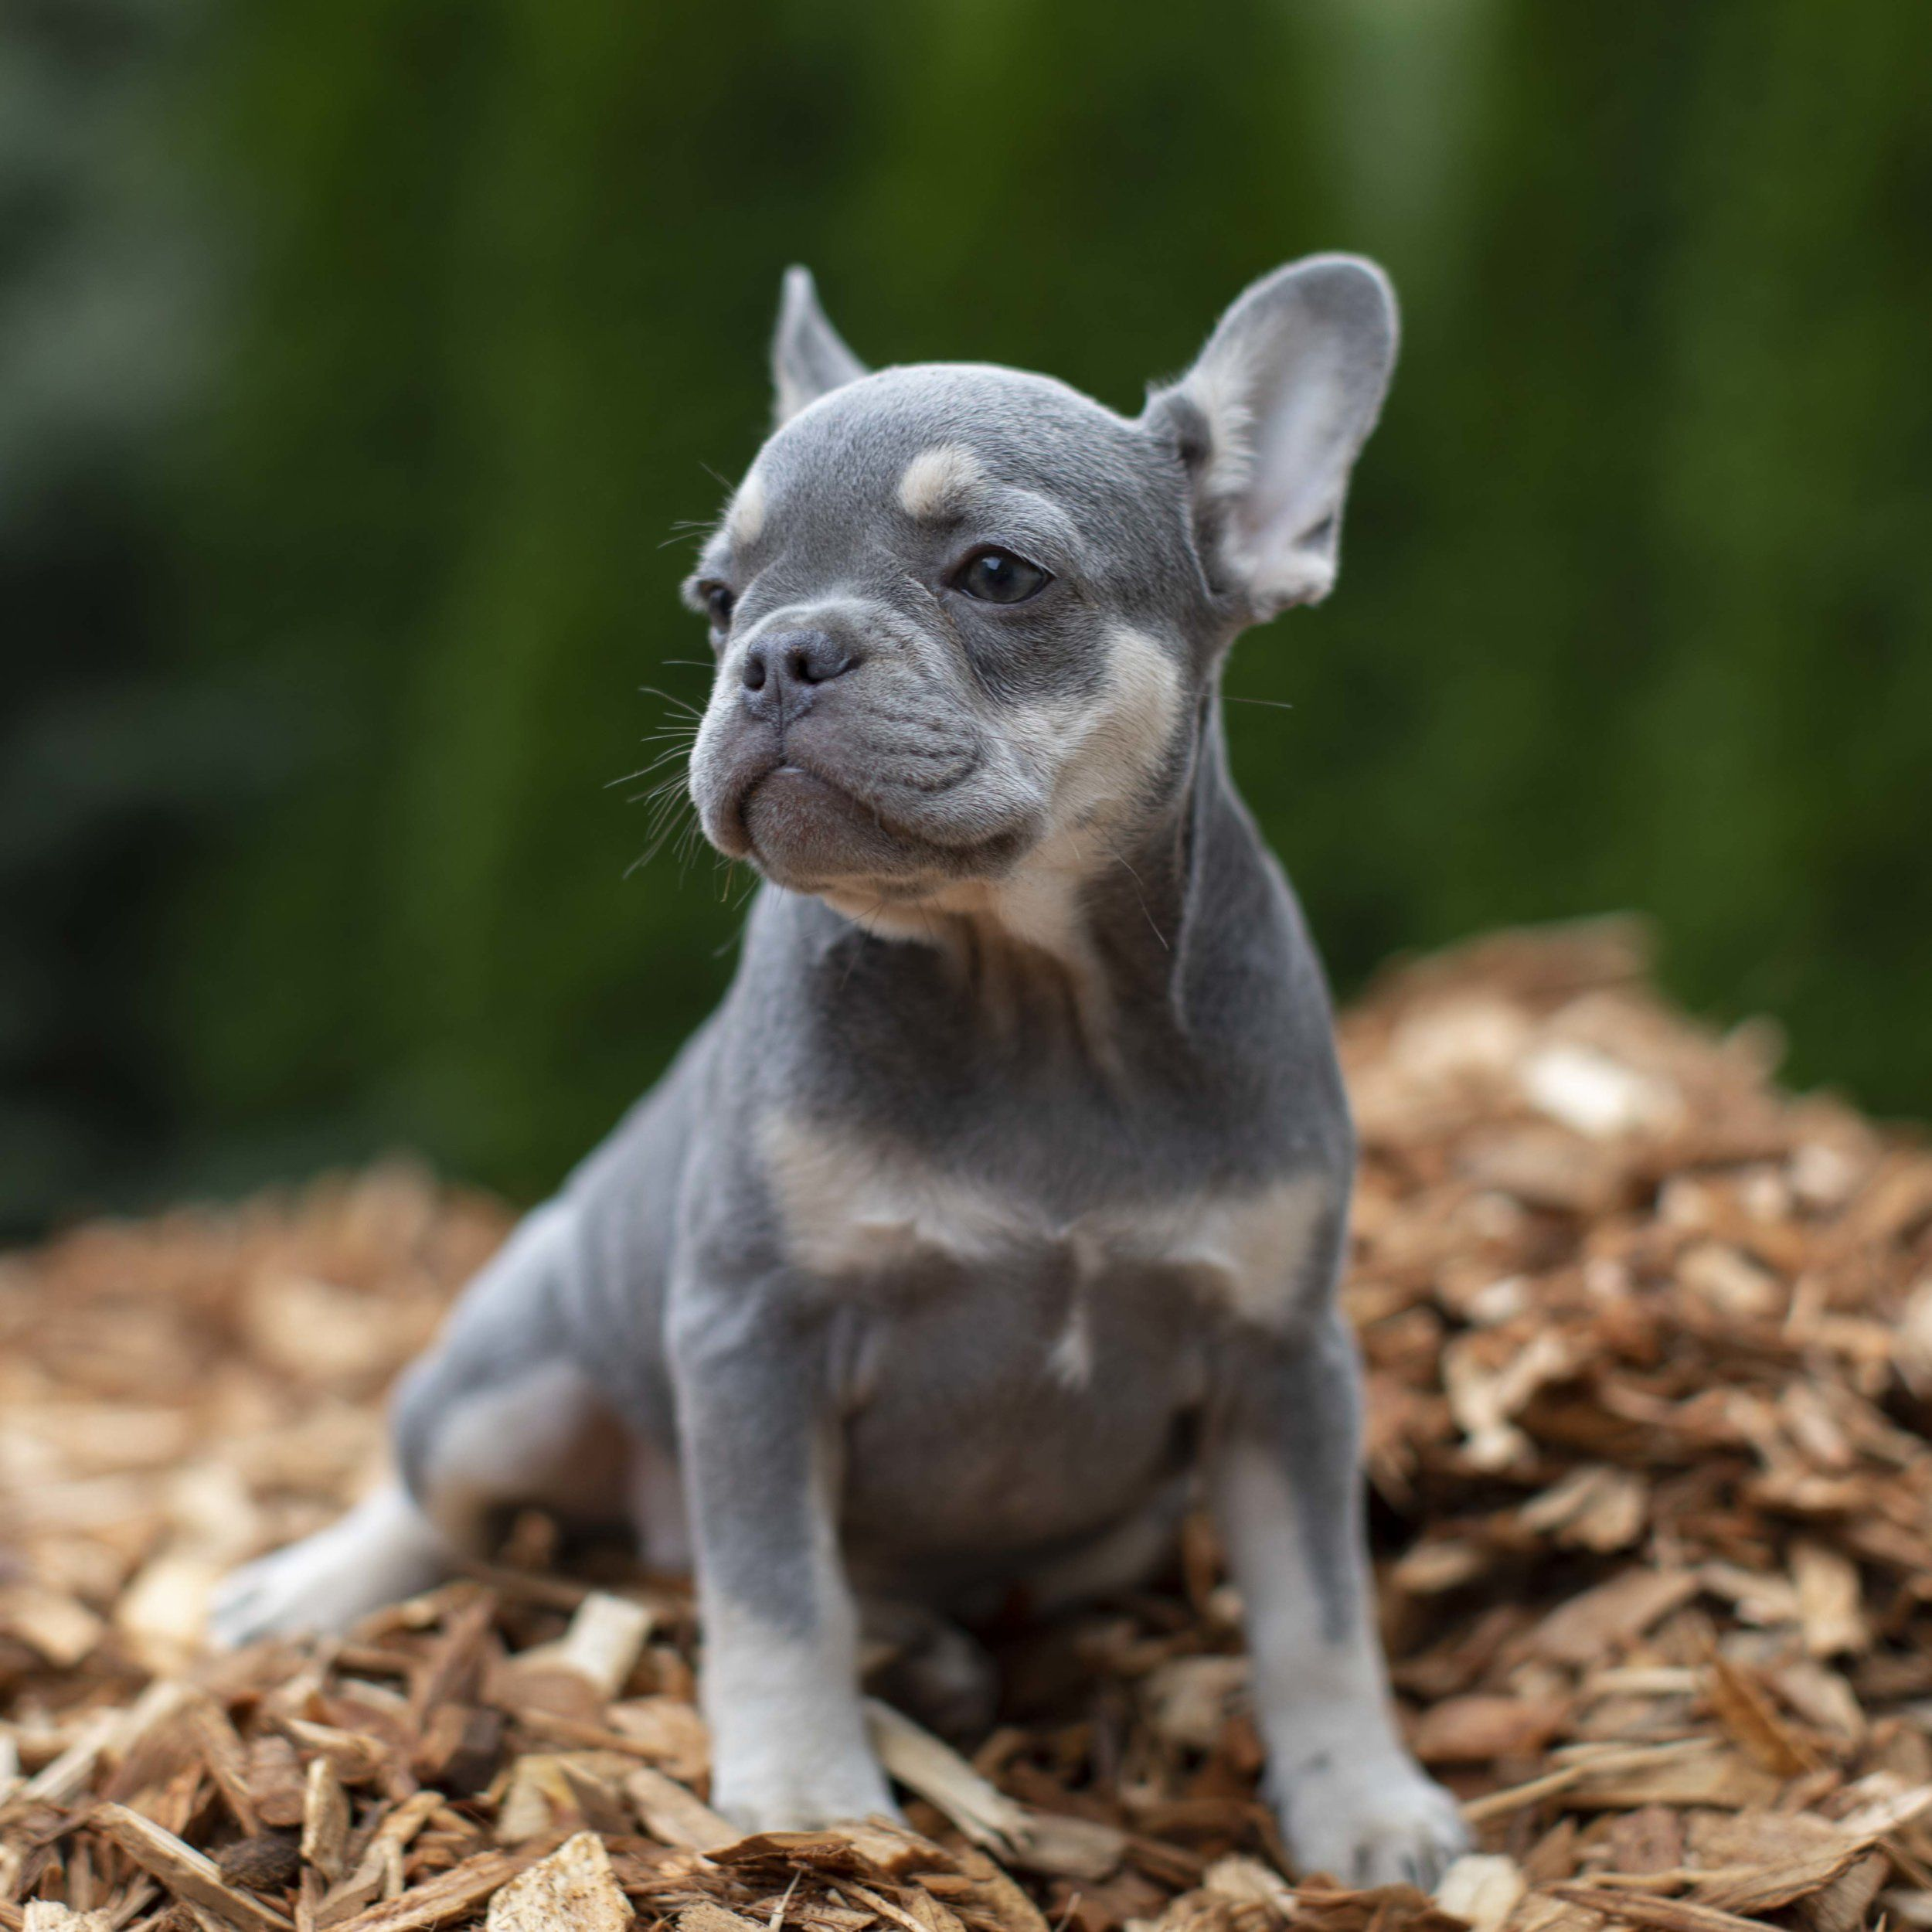 Reserved Lilac And Tan Female French Bulldog Puppy Looking For Her Forever Home In 2020 Bulldog Puppies French Bulldog Puppies French Bulldog Puppy